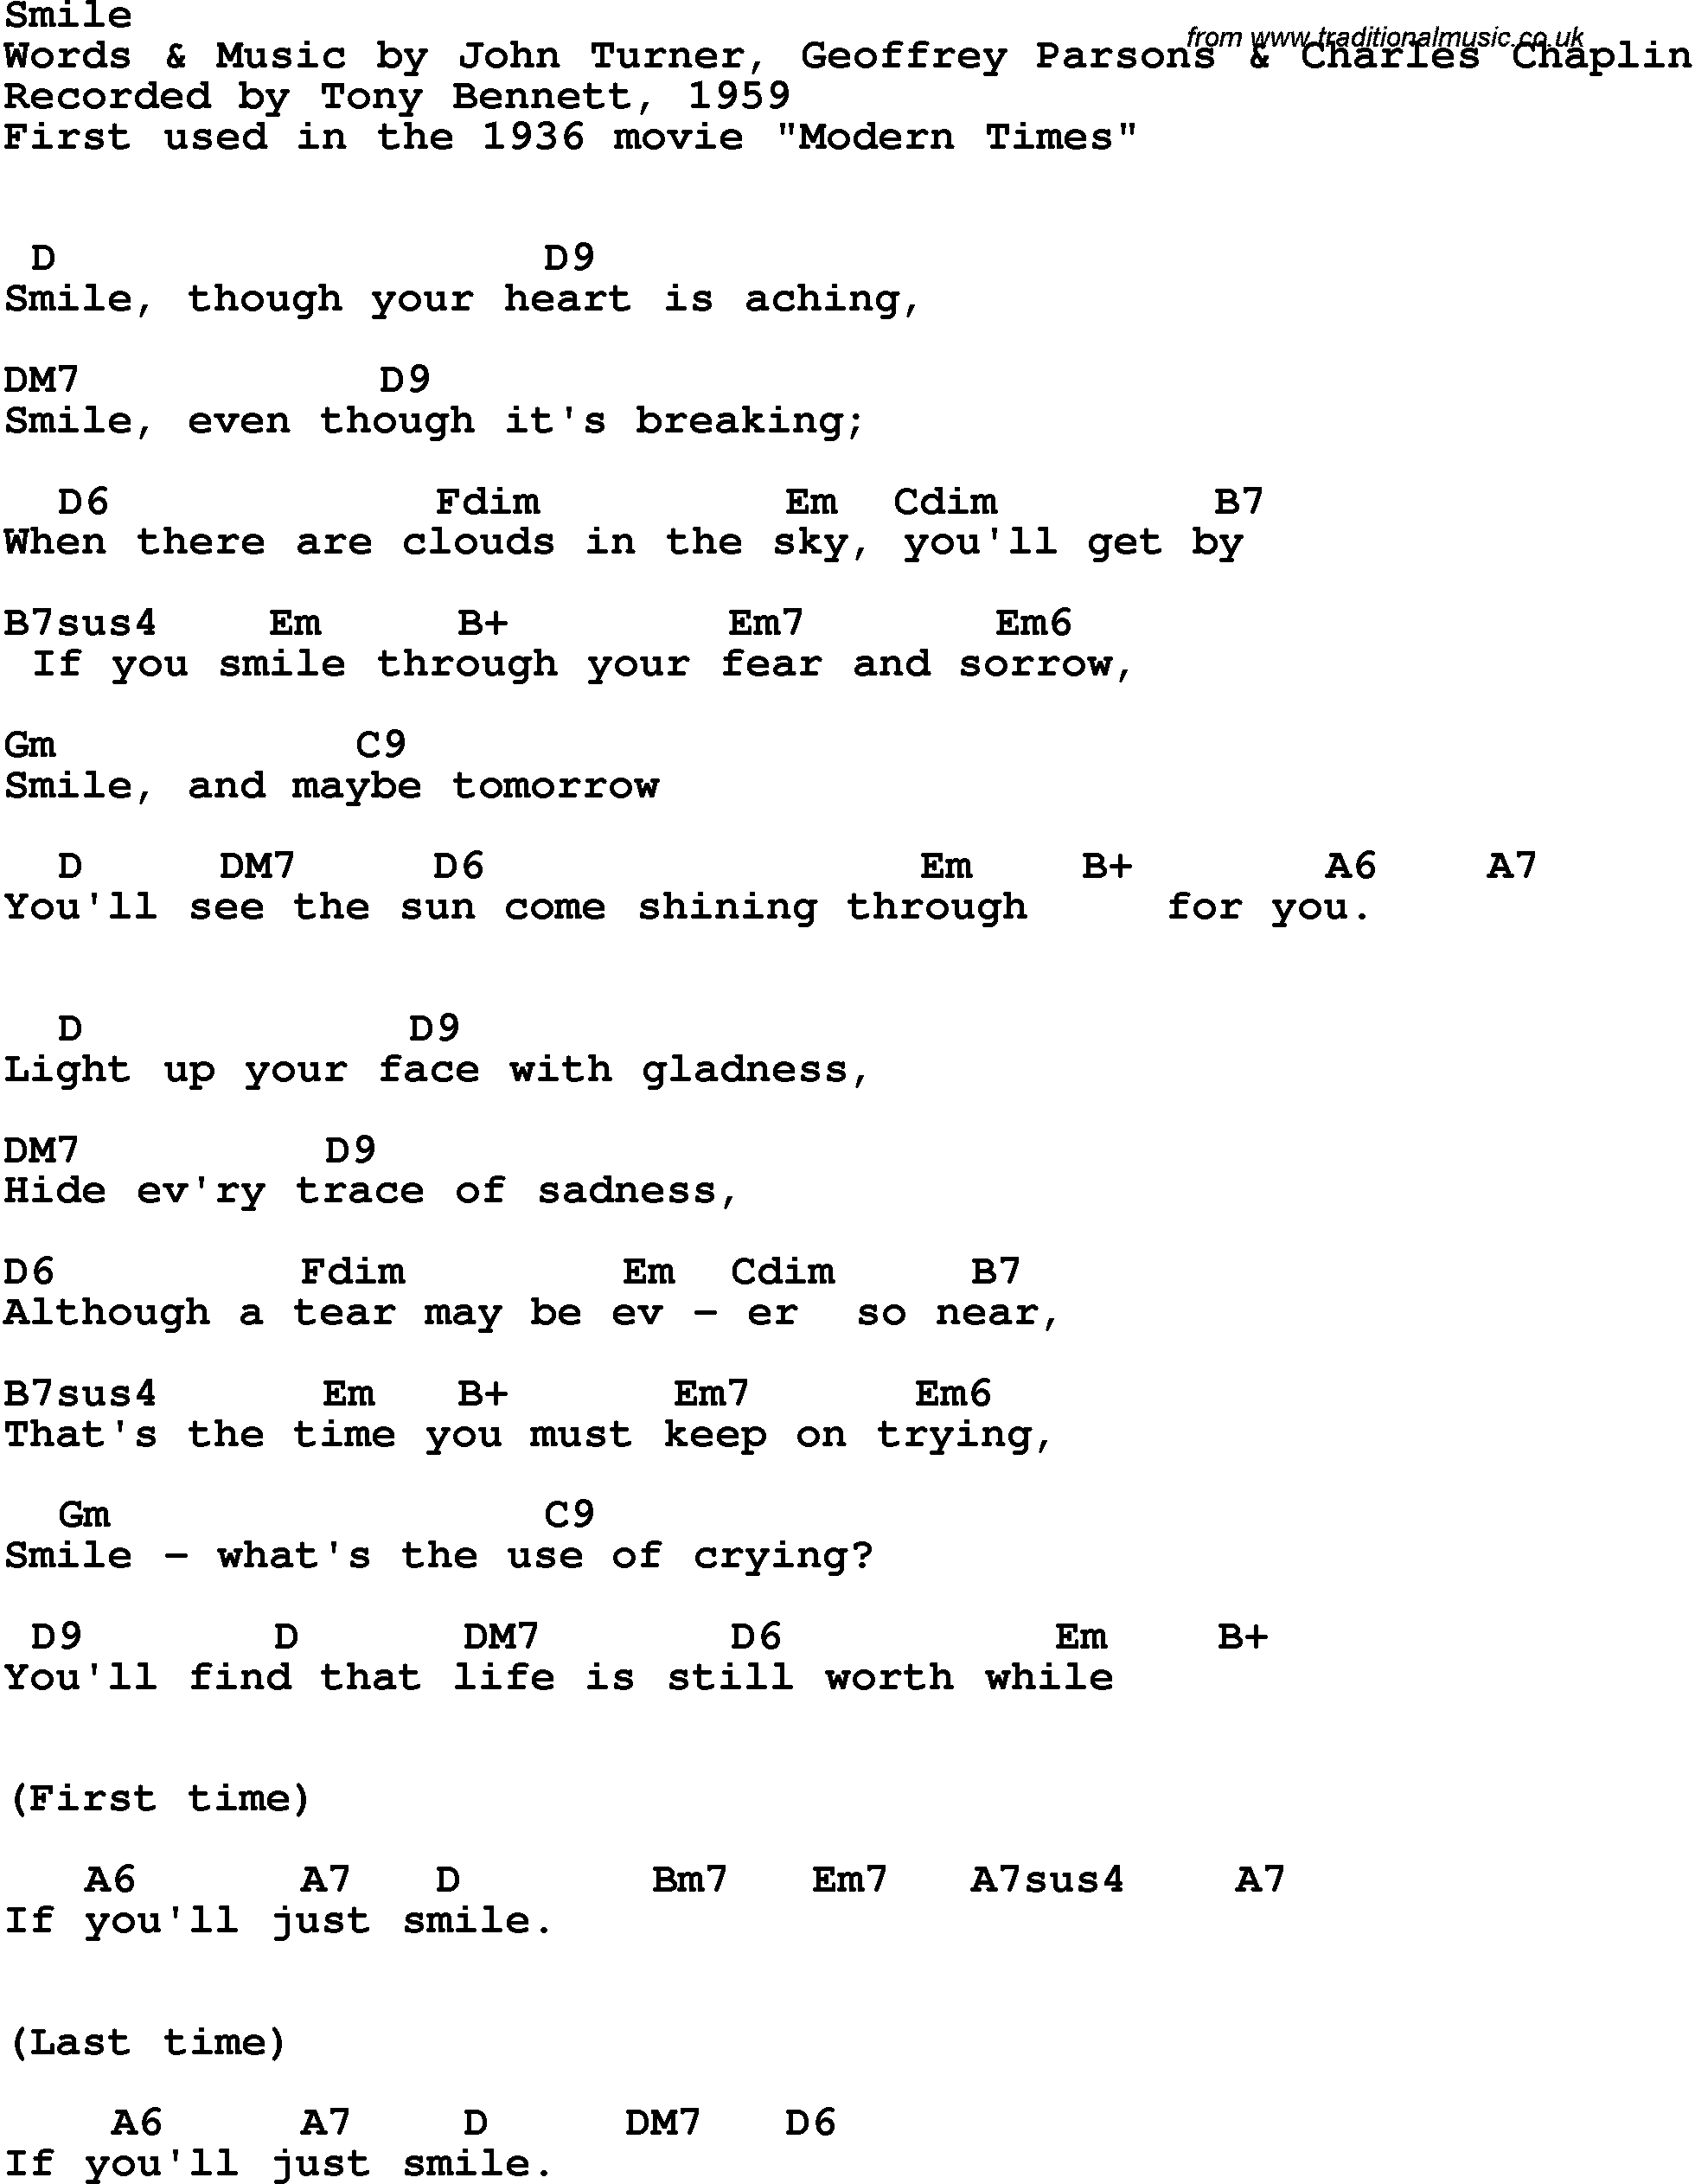 Song Lyrics With Guitar Chords For Smile Tony Bennett 1959